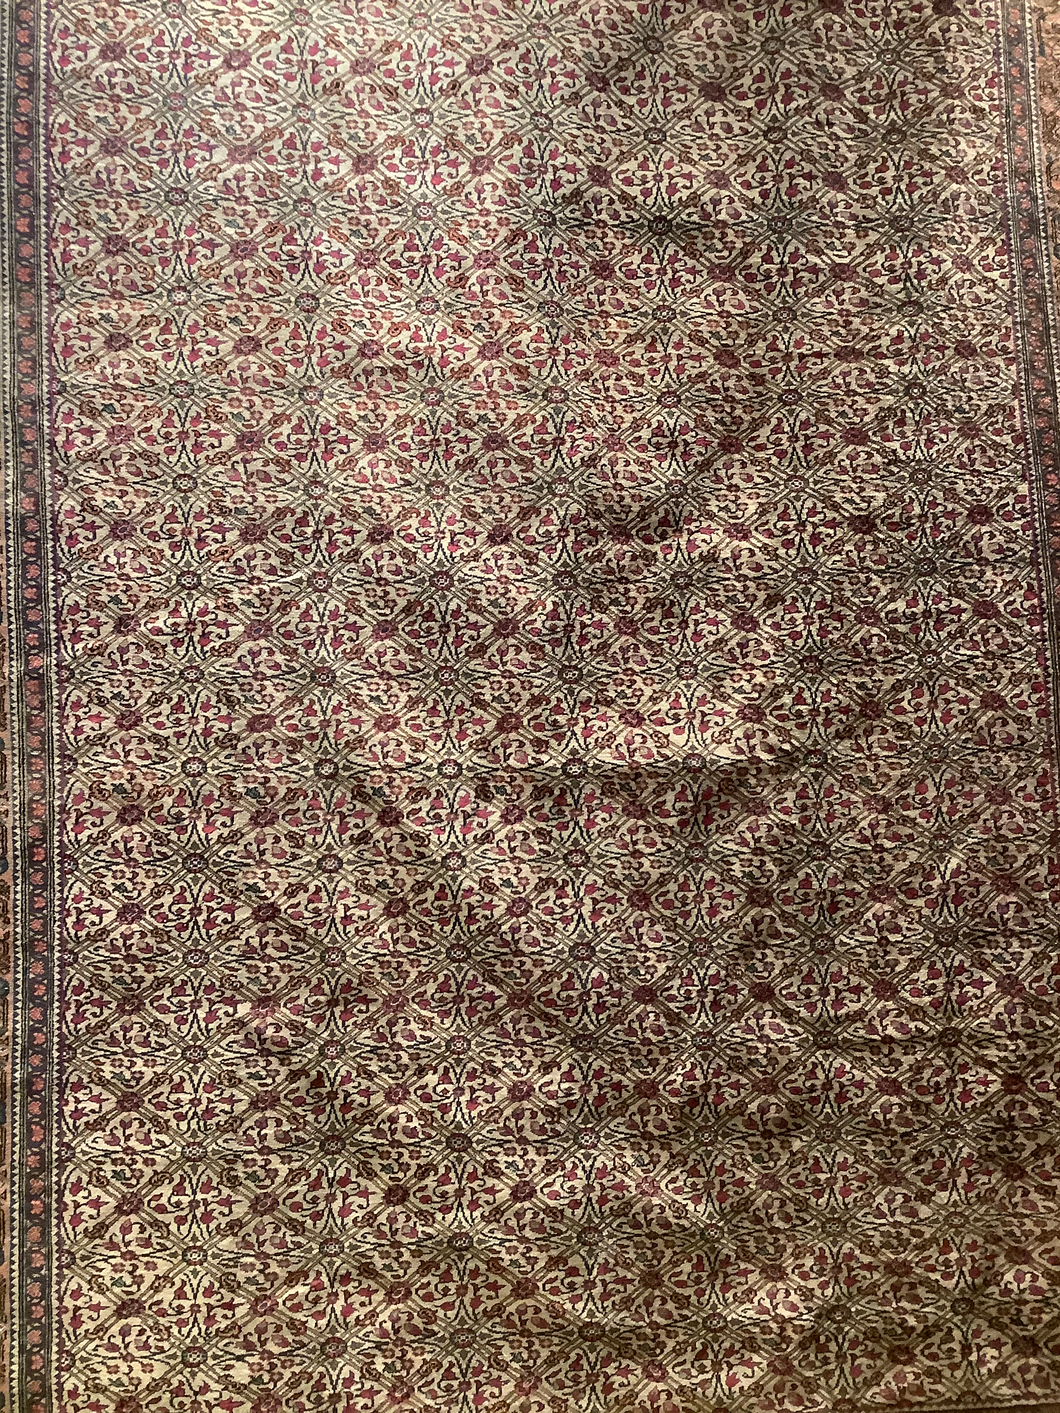 Antique Kayseri Rug